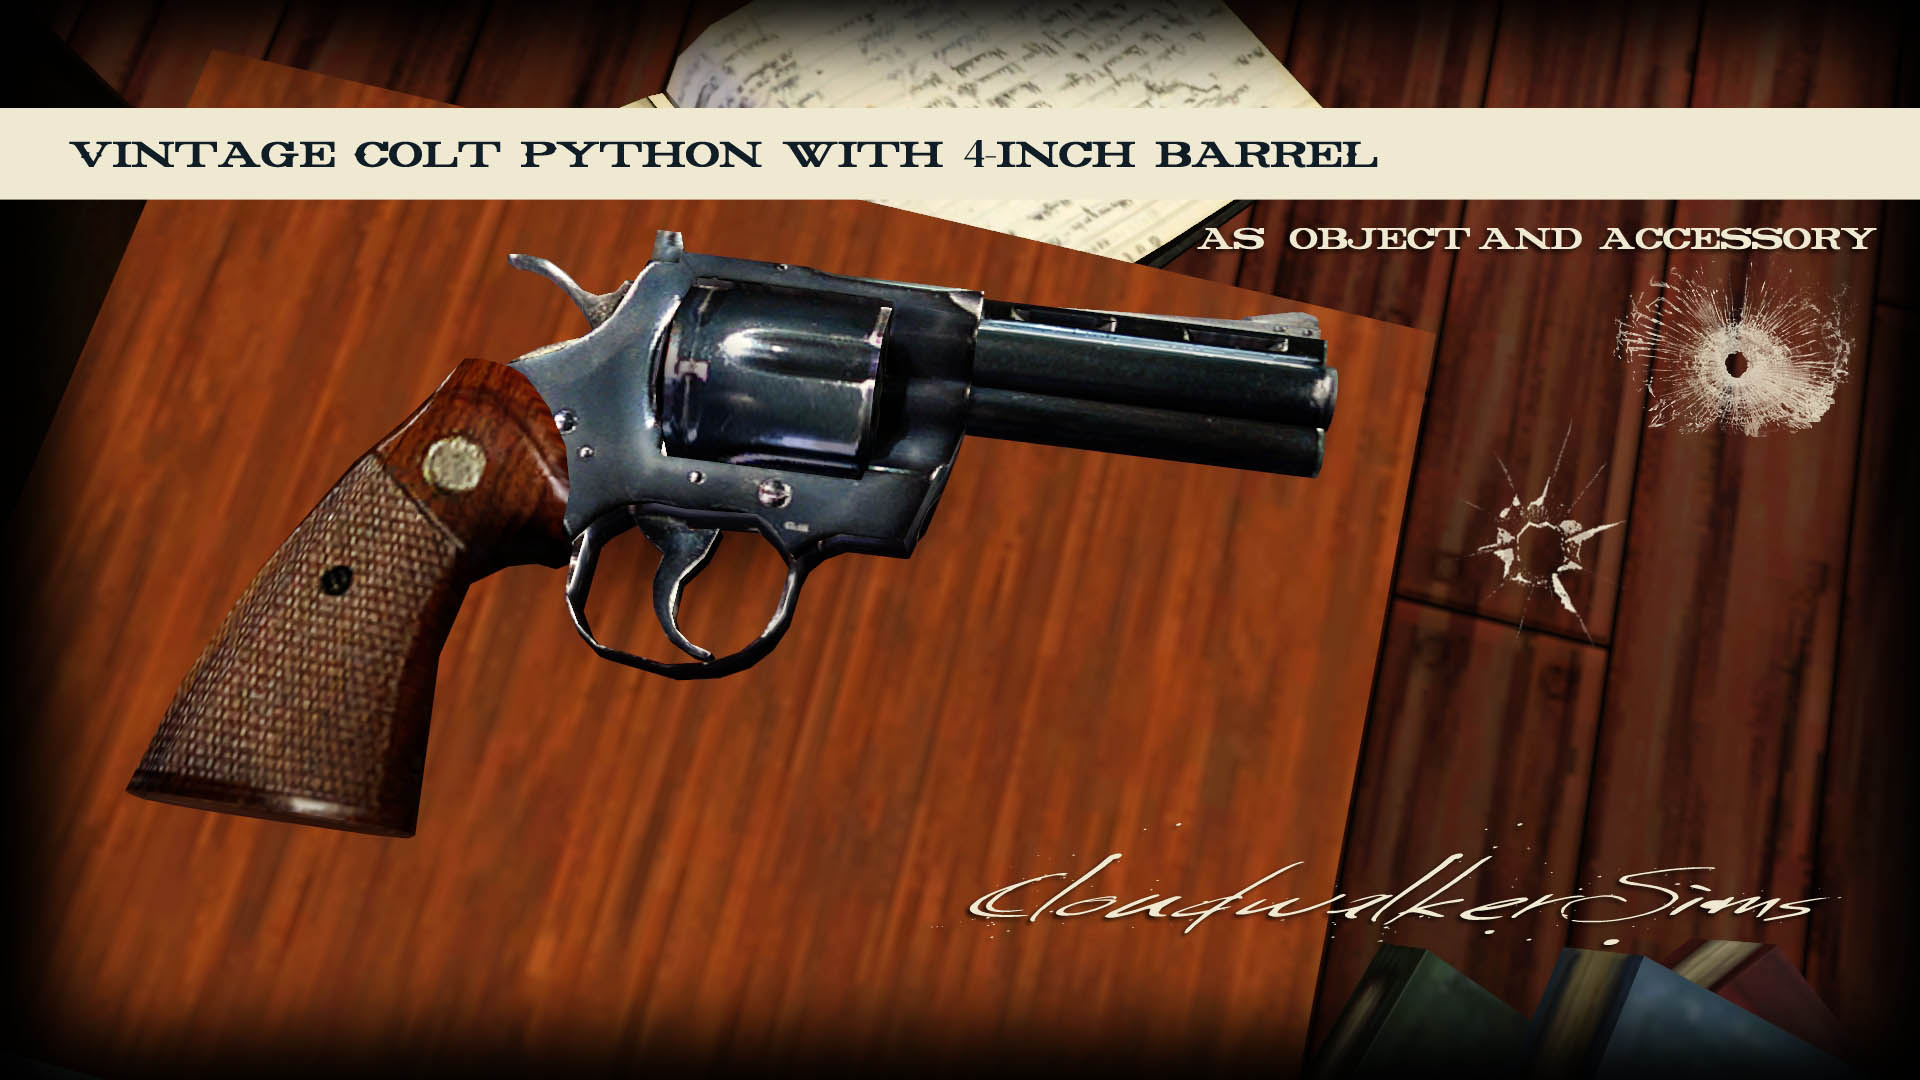 Vintage Colt Python Object and Accessory by Cloudwalker Sims